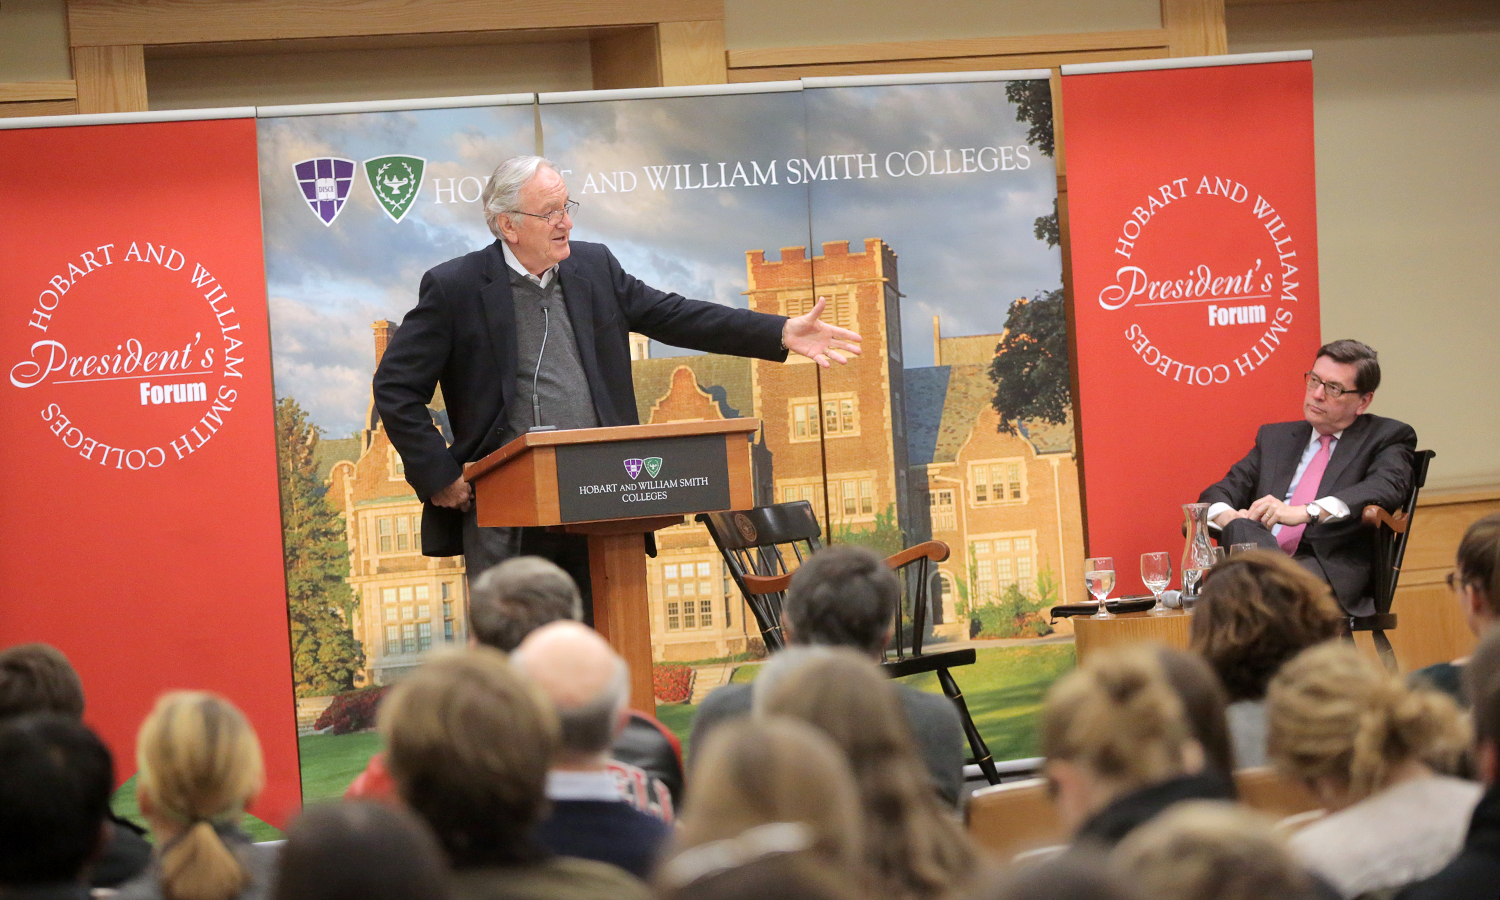 """President Mark D. Gearan looks on as Retired Senator Tom Harkin (D-Iowa) delivers his lecture titled, âLooking Forward: The ADA, Election, and You"""" as part of the President's Forum in the Vandervort Room of the Scandling Campus Center."""